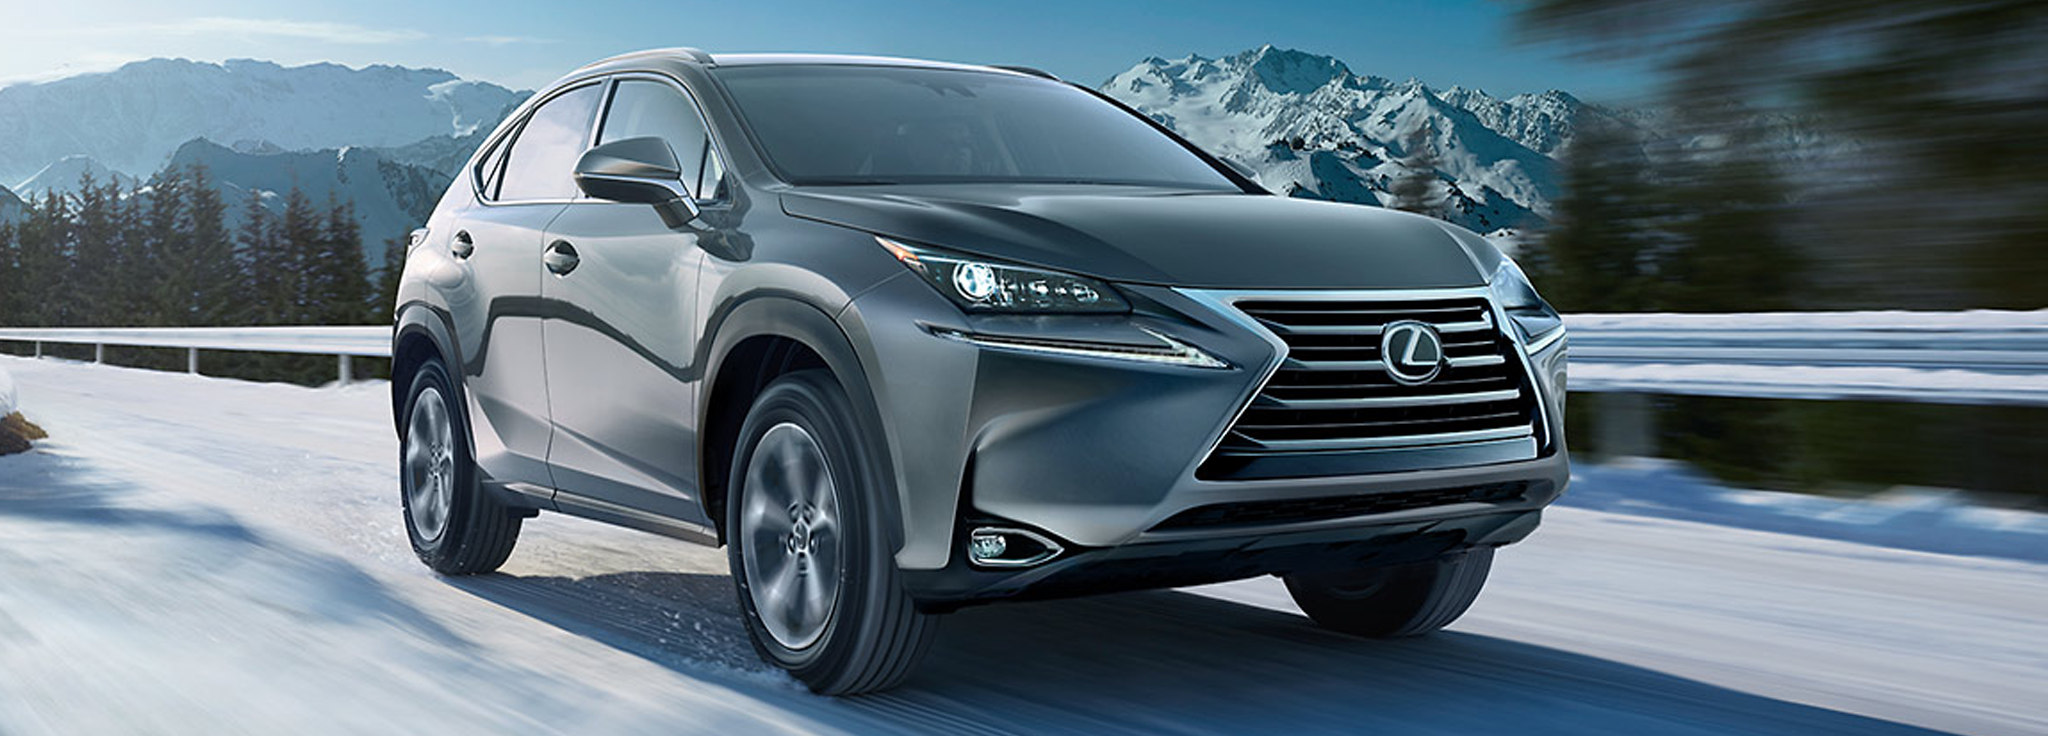 Lexus lease deals 2018